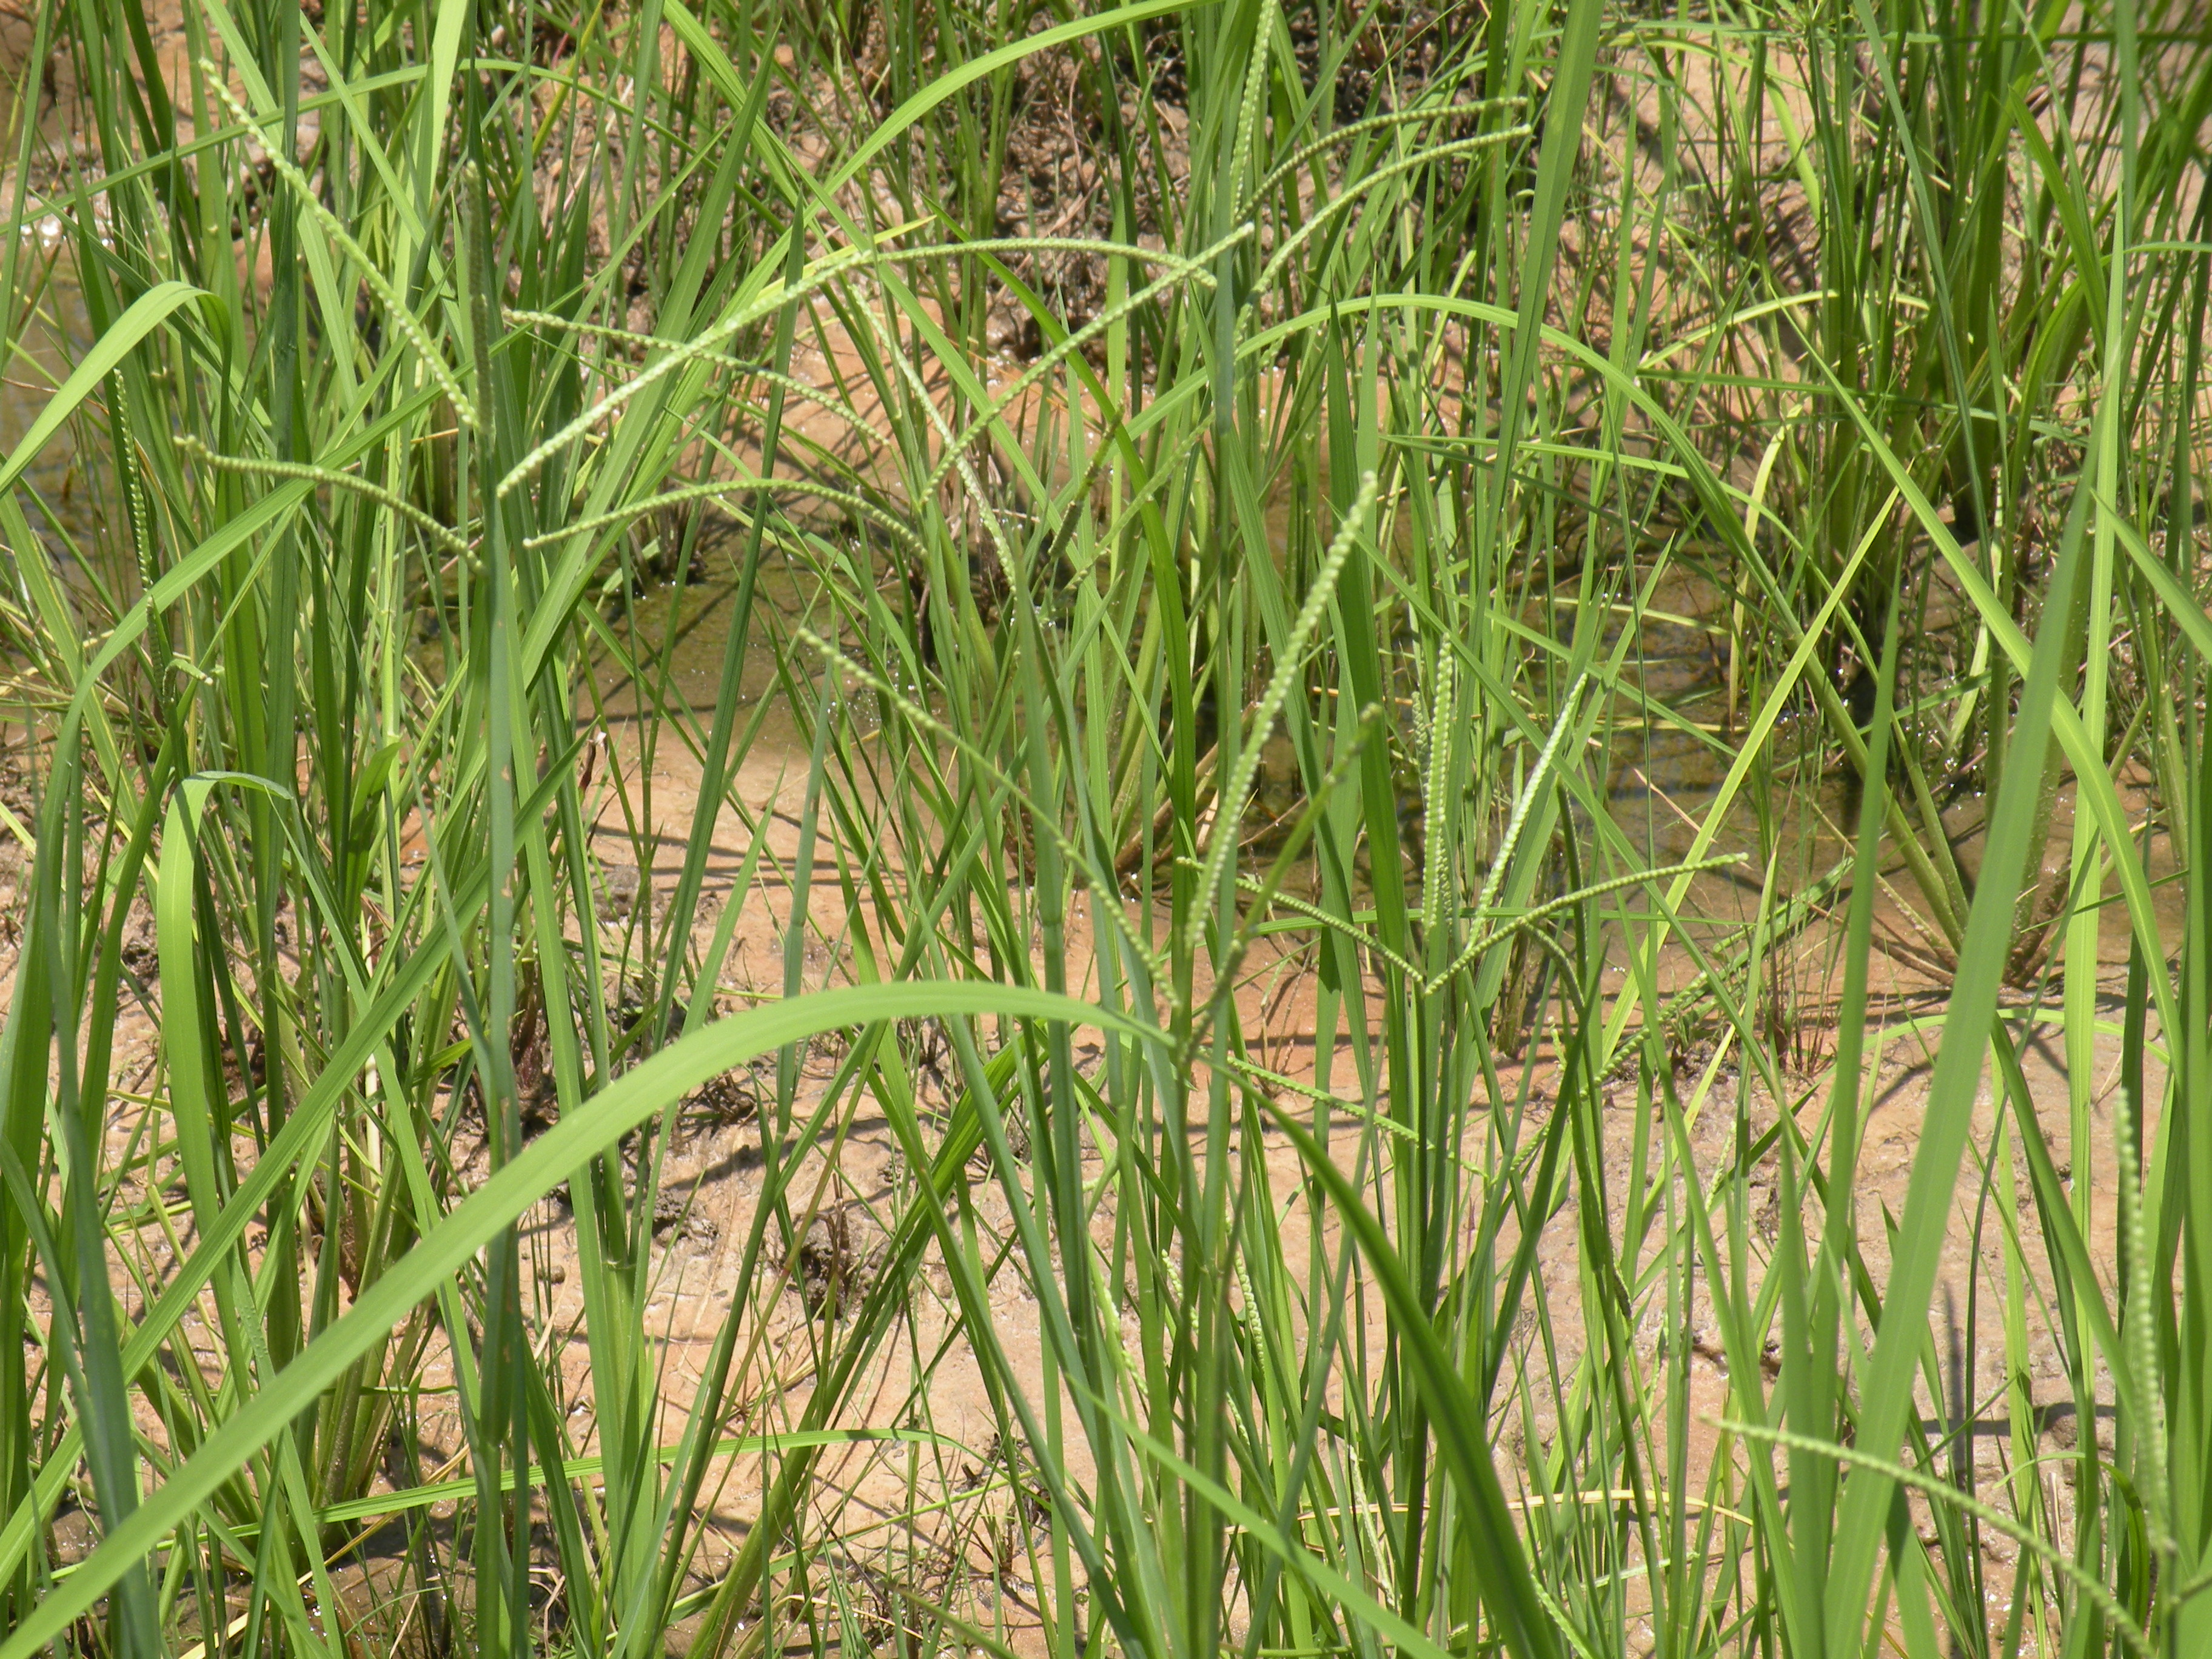 Plants with panicles growing in rice field